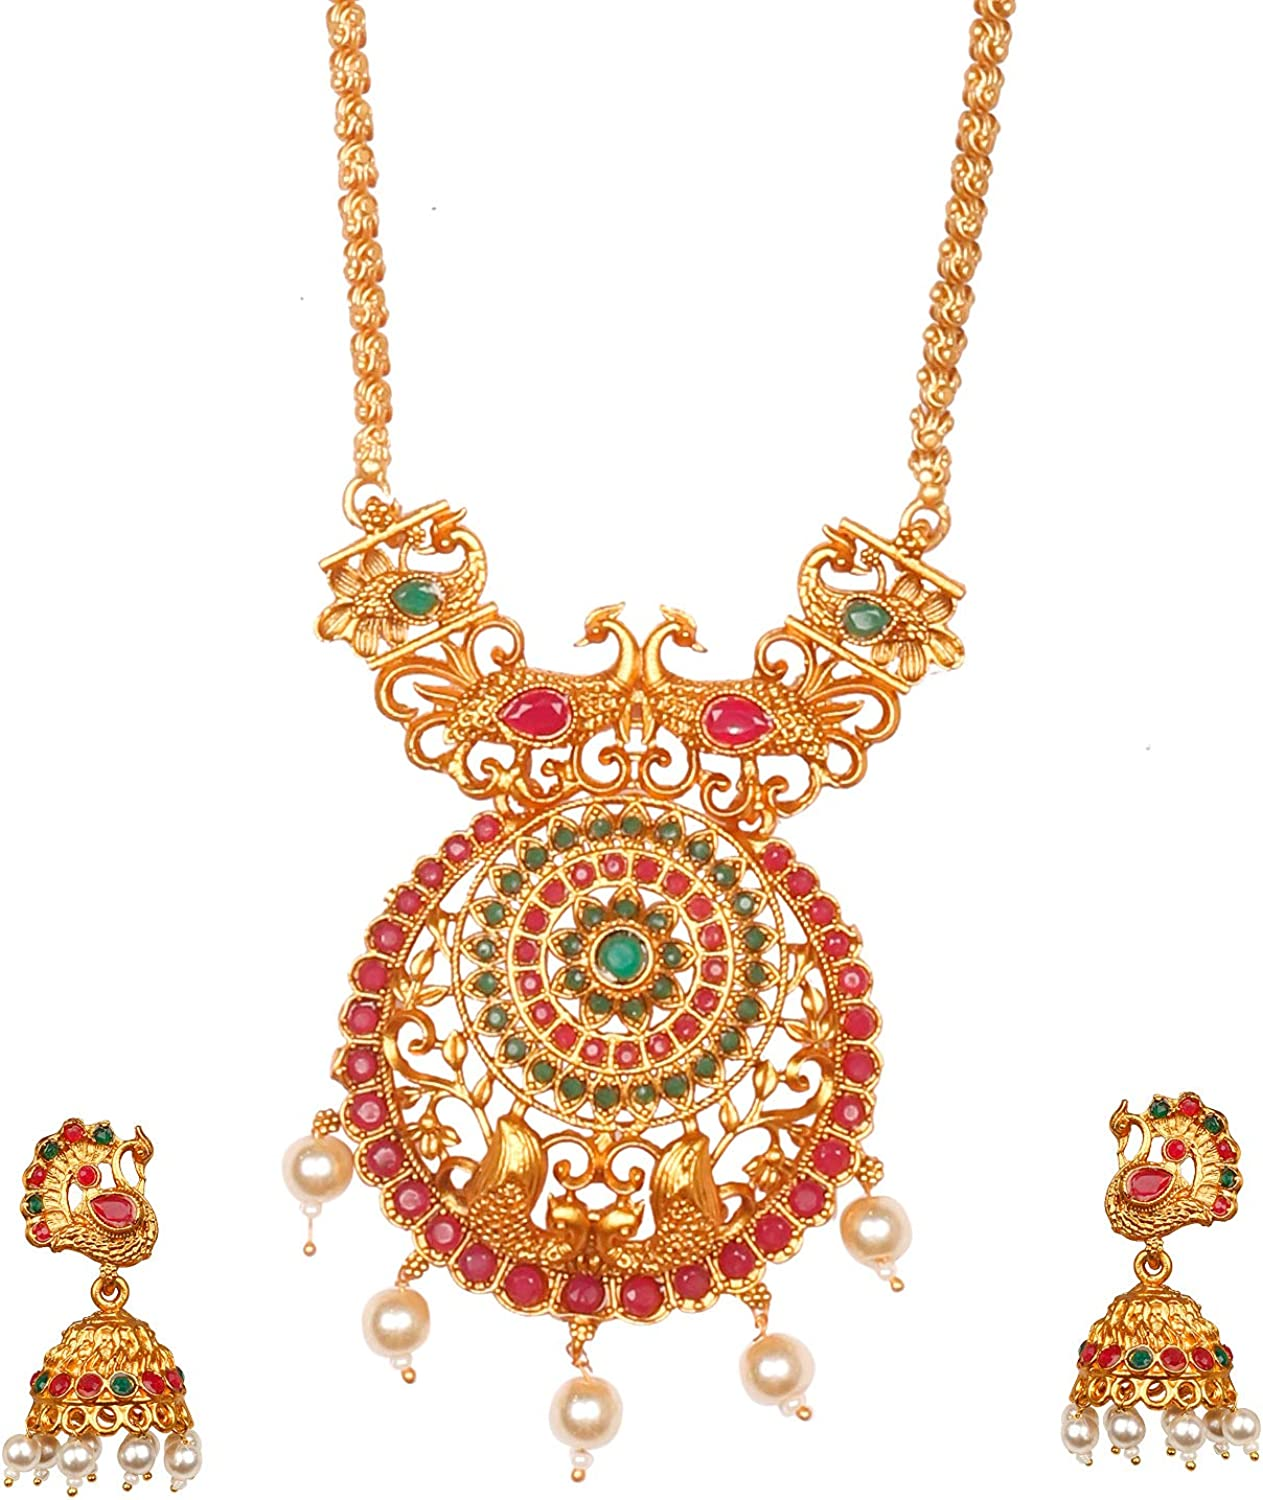 Bodha Traditional Indian Handcrafted 18K Antique Gold Plated Temple Jewellery Necklace with Matching Earring for Women (SJ_2899)